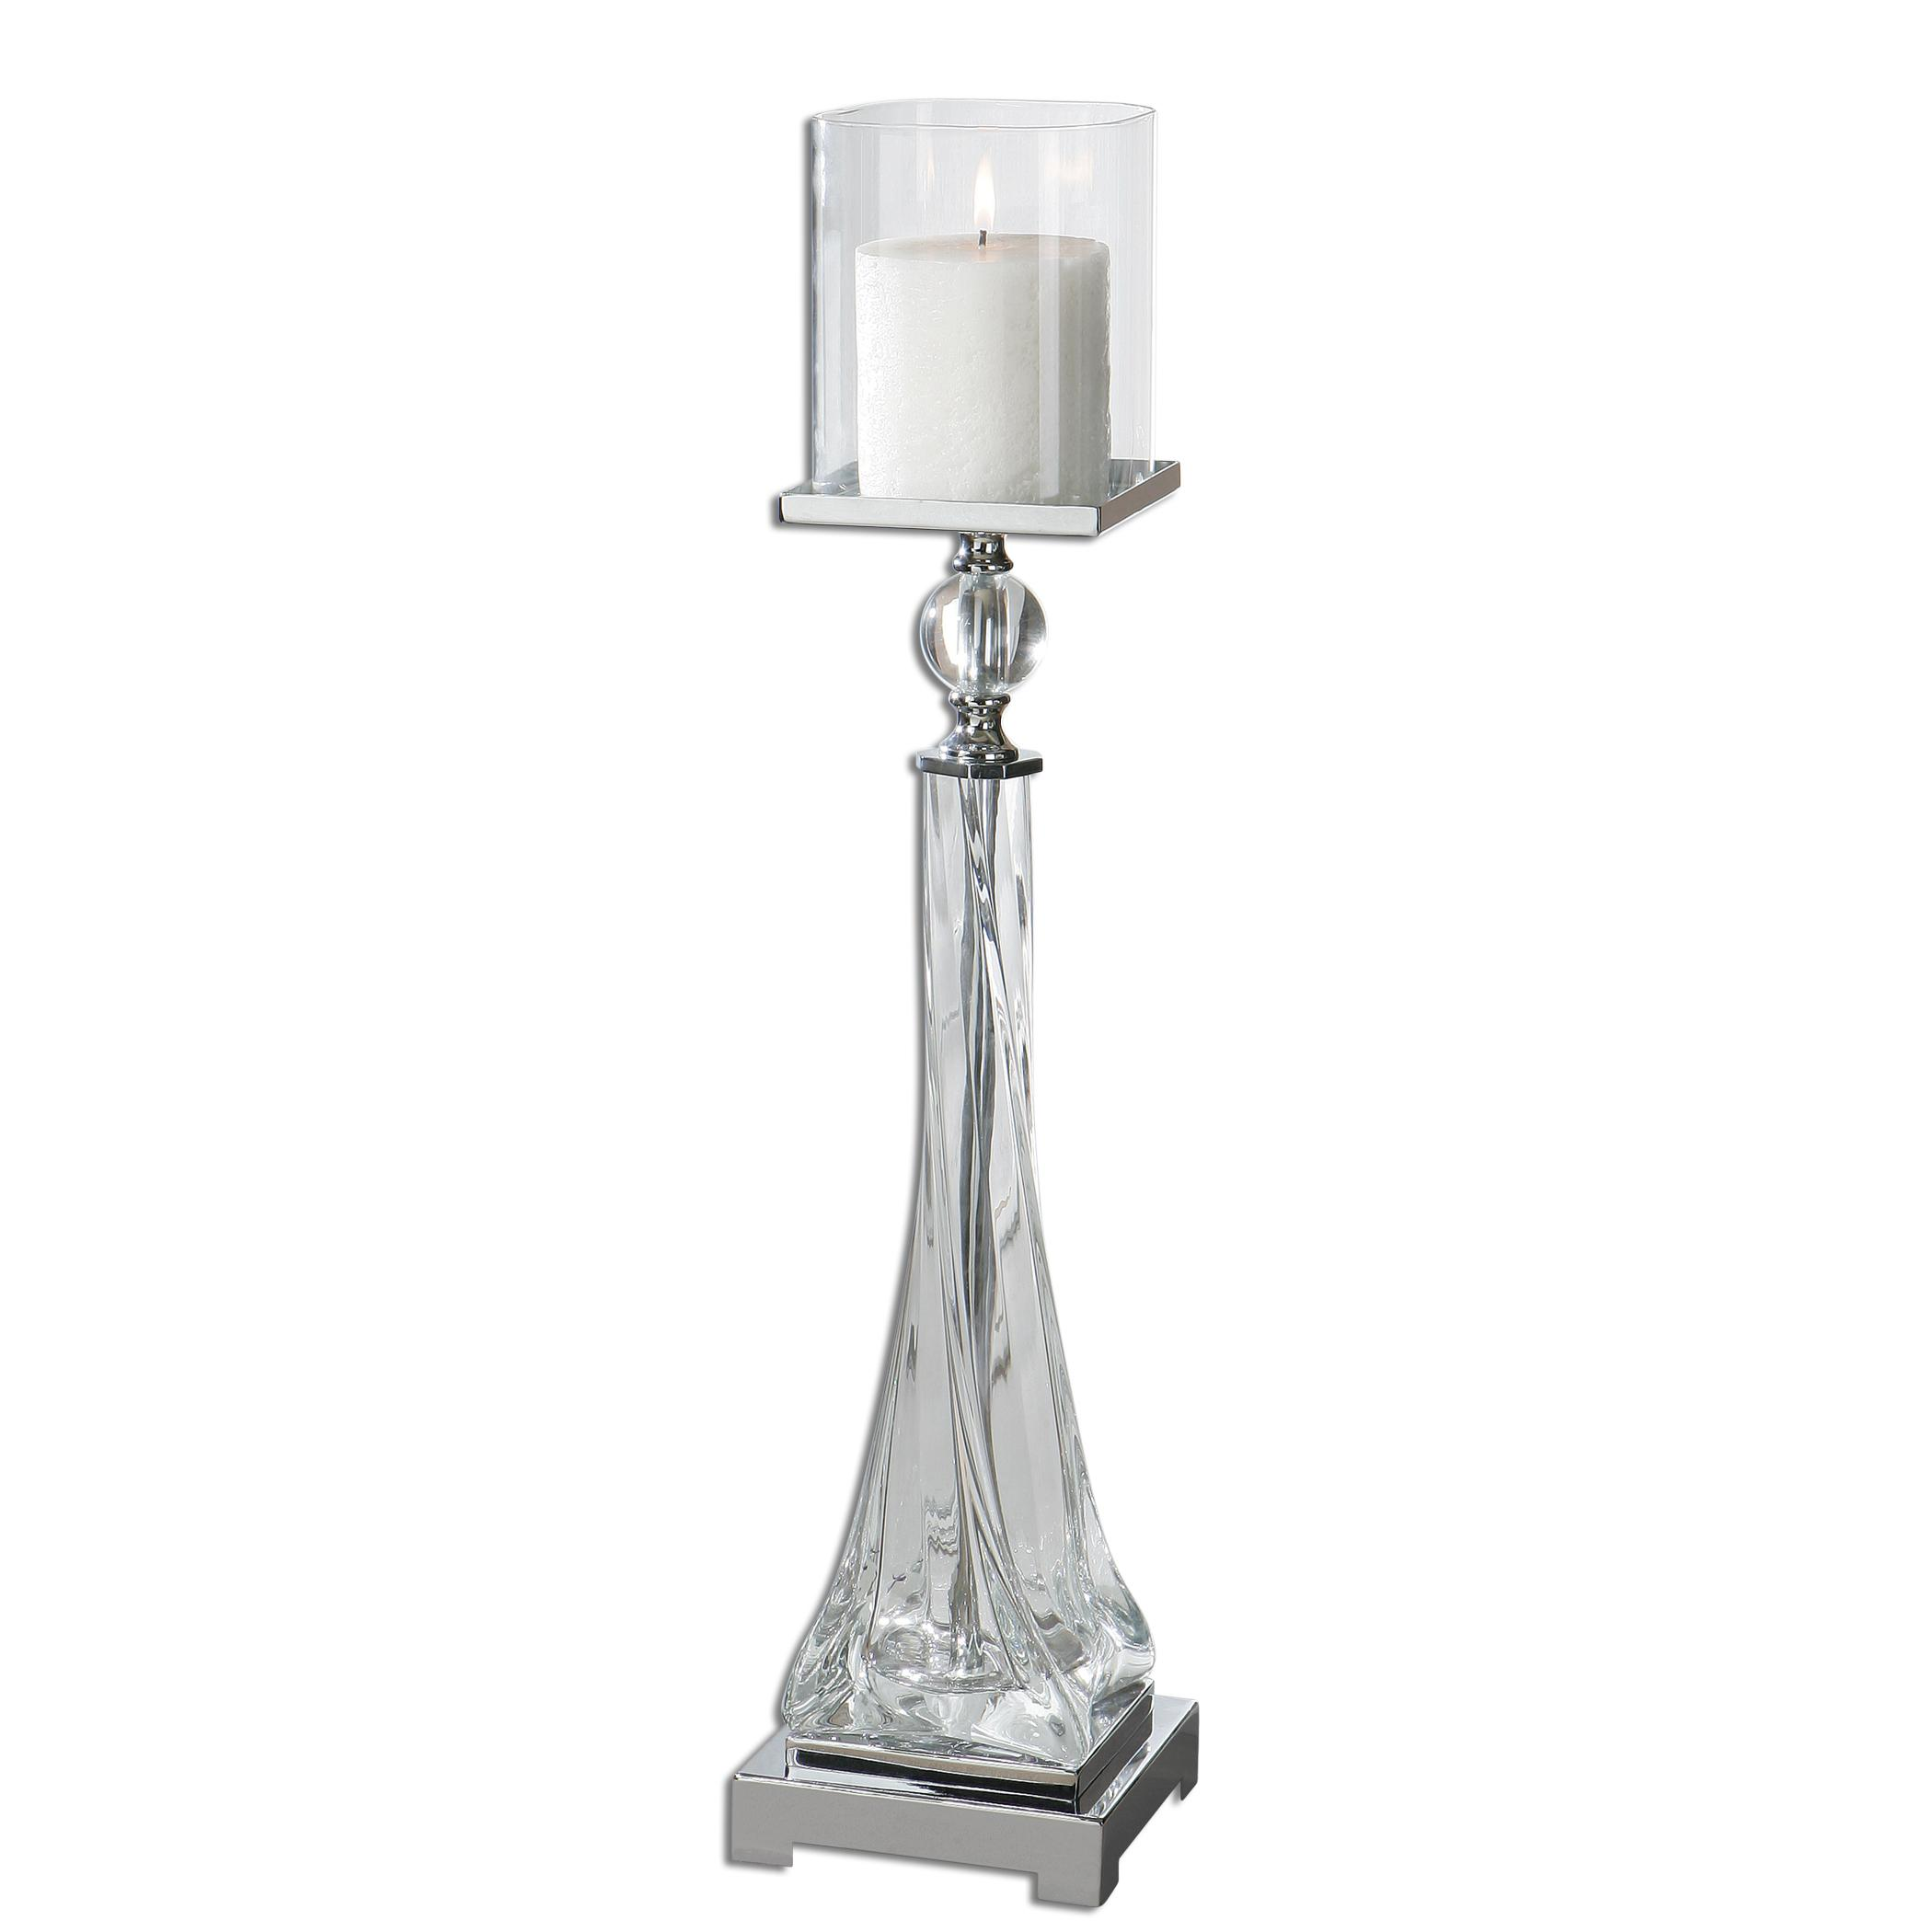 Uttermost Accessories Grancona Glass Candleholder - Item Number: 19852